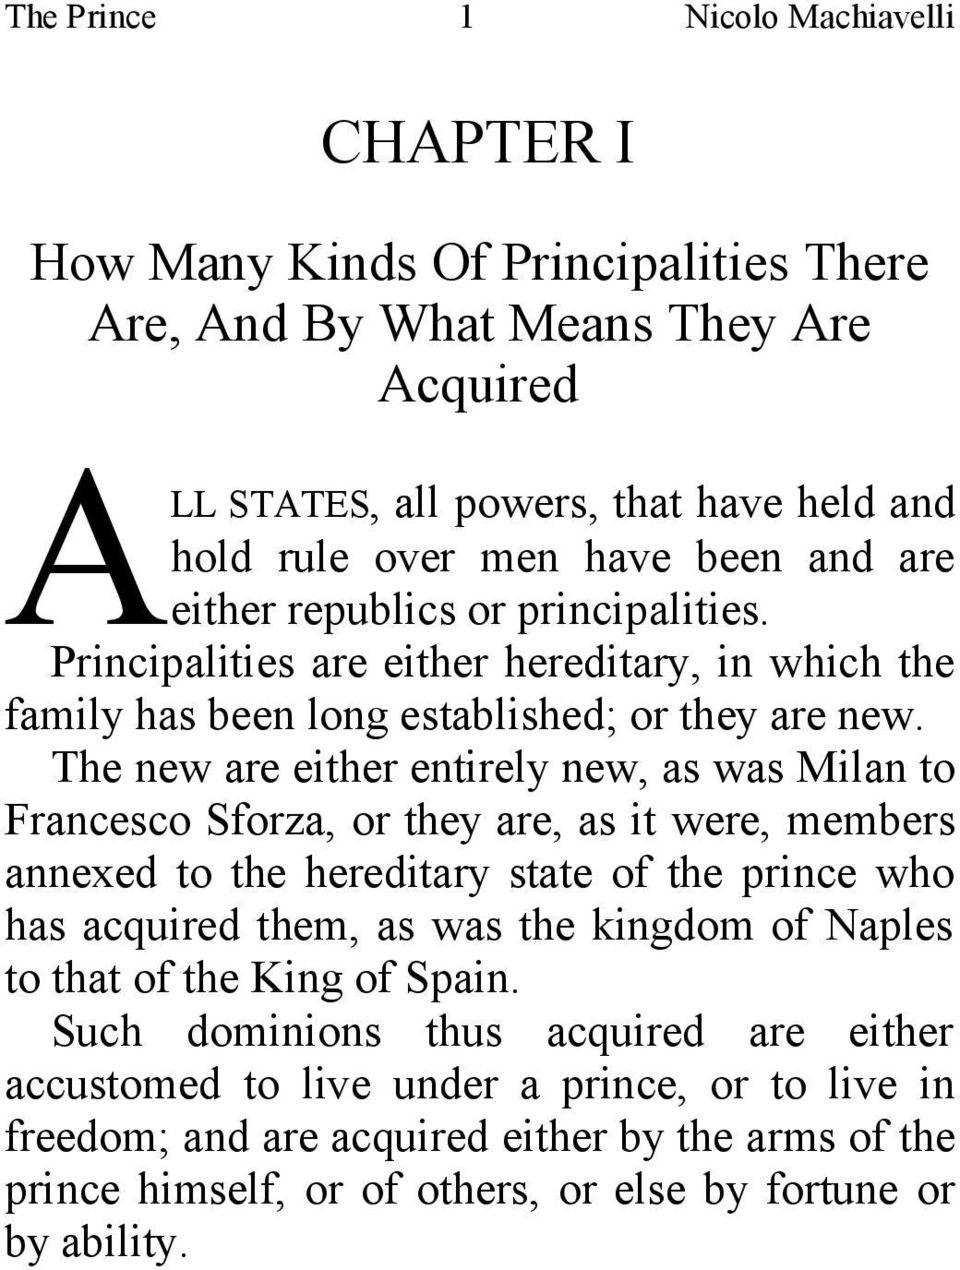 The new are either entirely new, as was Milan to Francesco Sforza, or they are, as it were, members annexed to the hereditary state of the prince who has acquired them, as was the kingdom of